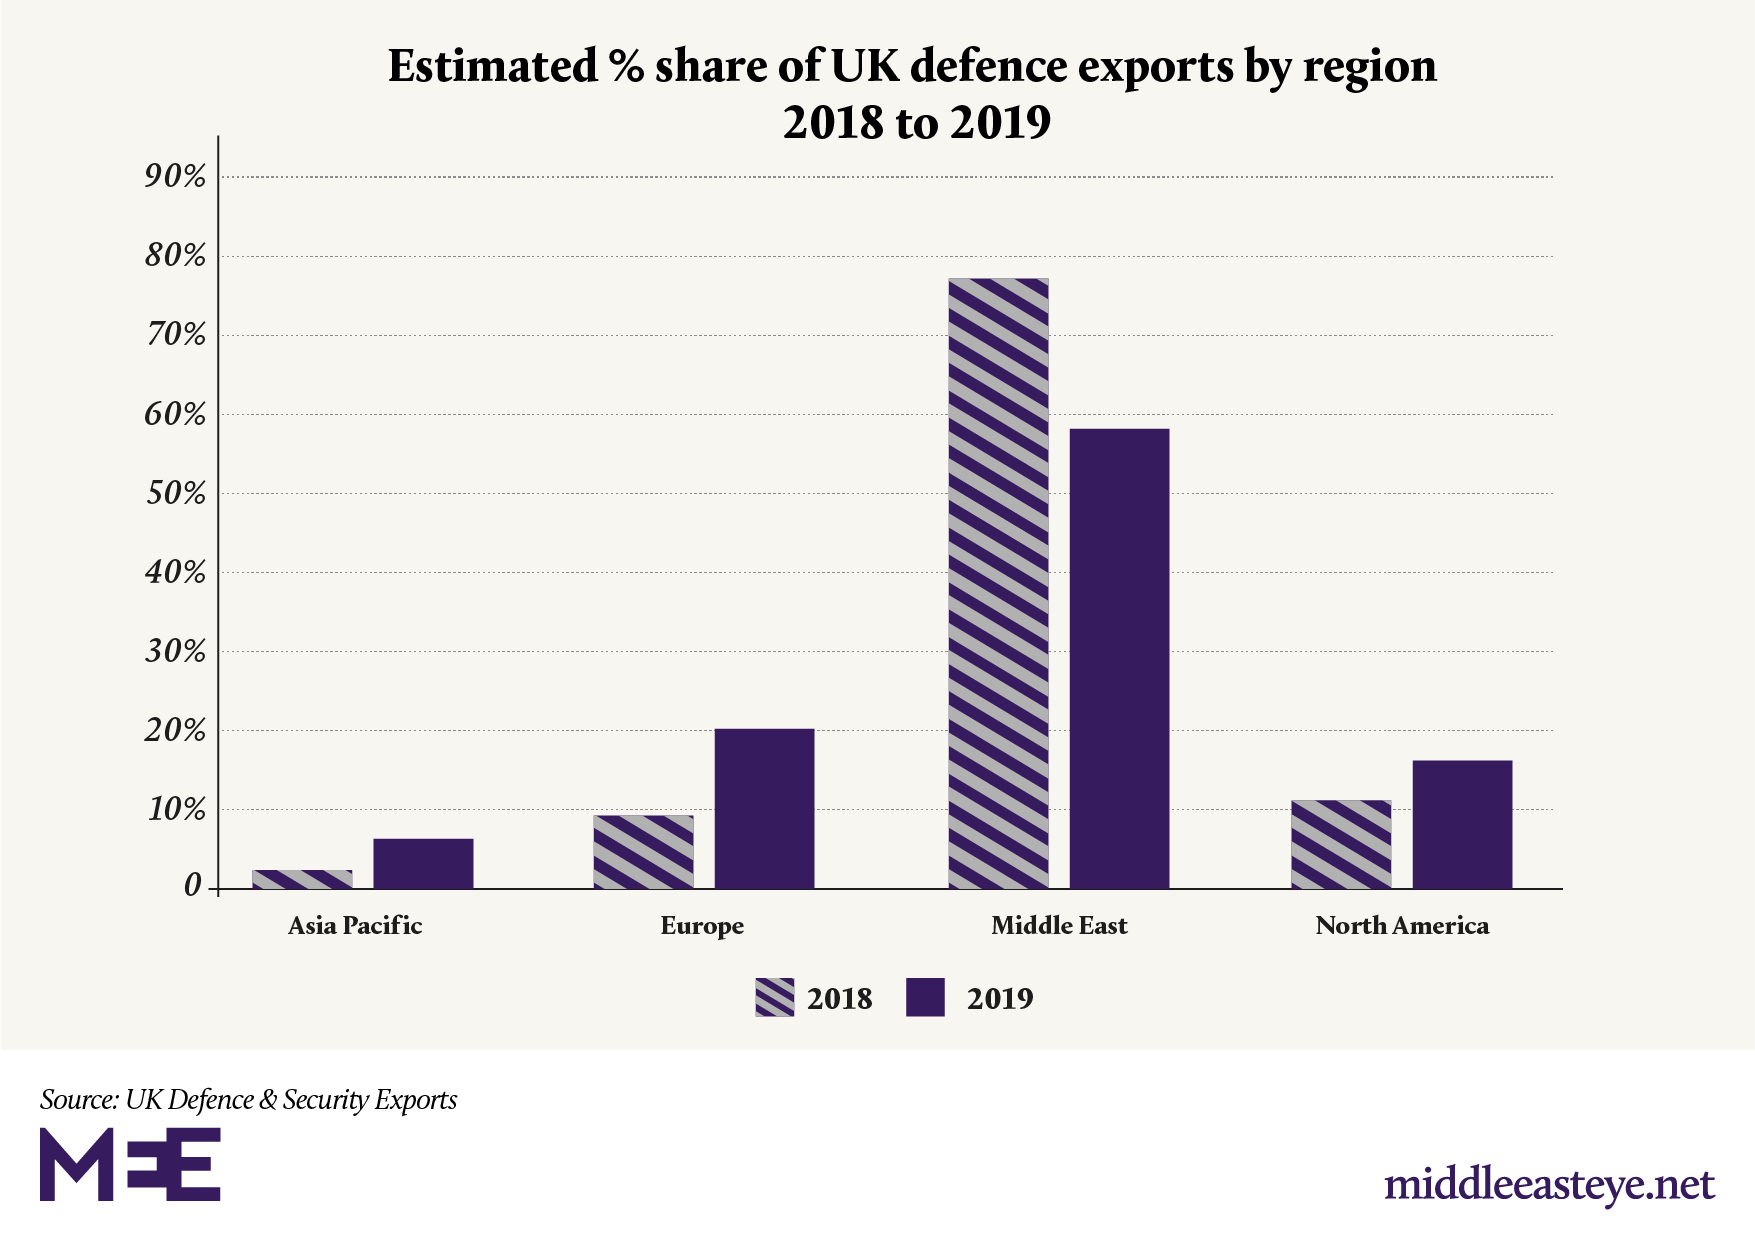 uk defence exports 2018 and 2019